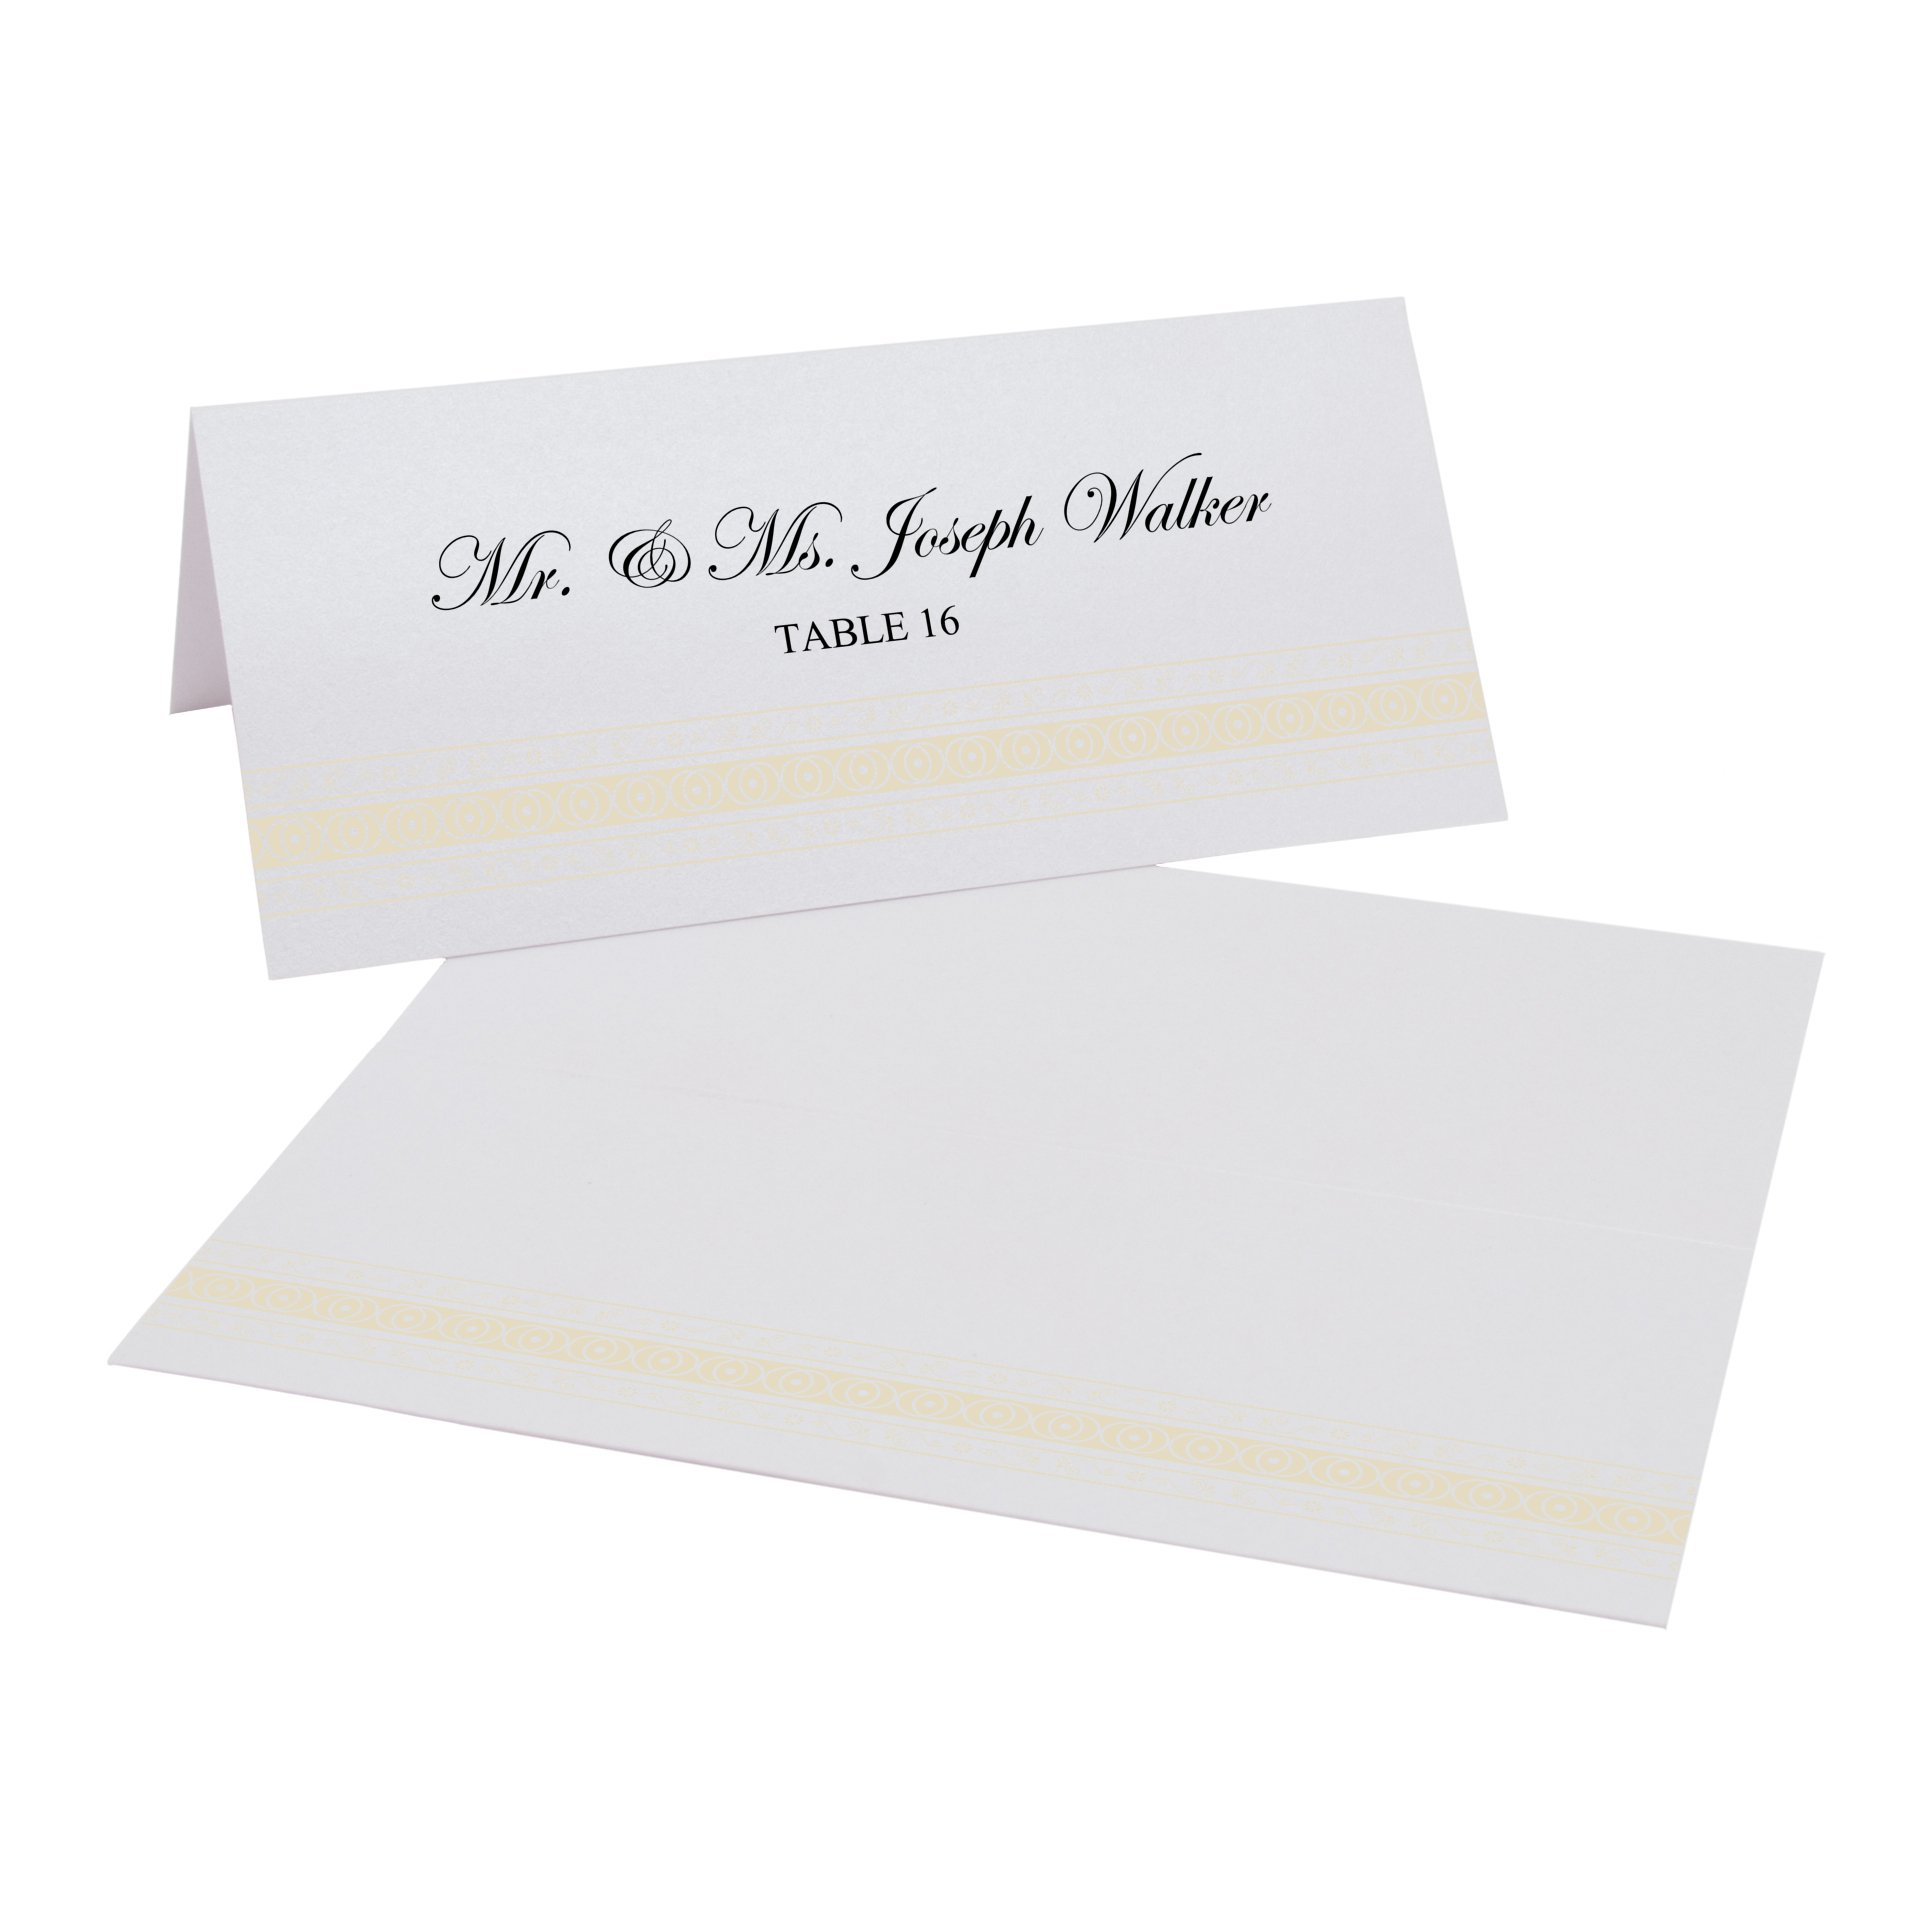 Mumbai Inspired Border Easy Print Place Cards, Pearl White, Ivory, Set of 375 (94 Sheets) by Documents and Designs